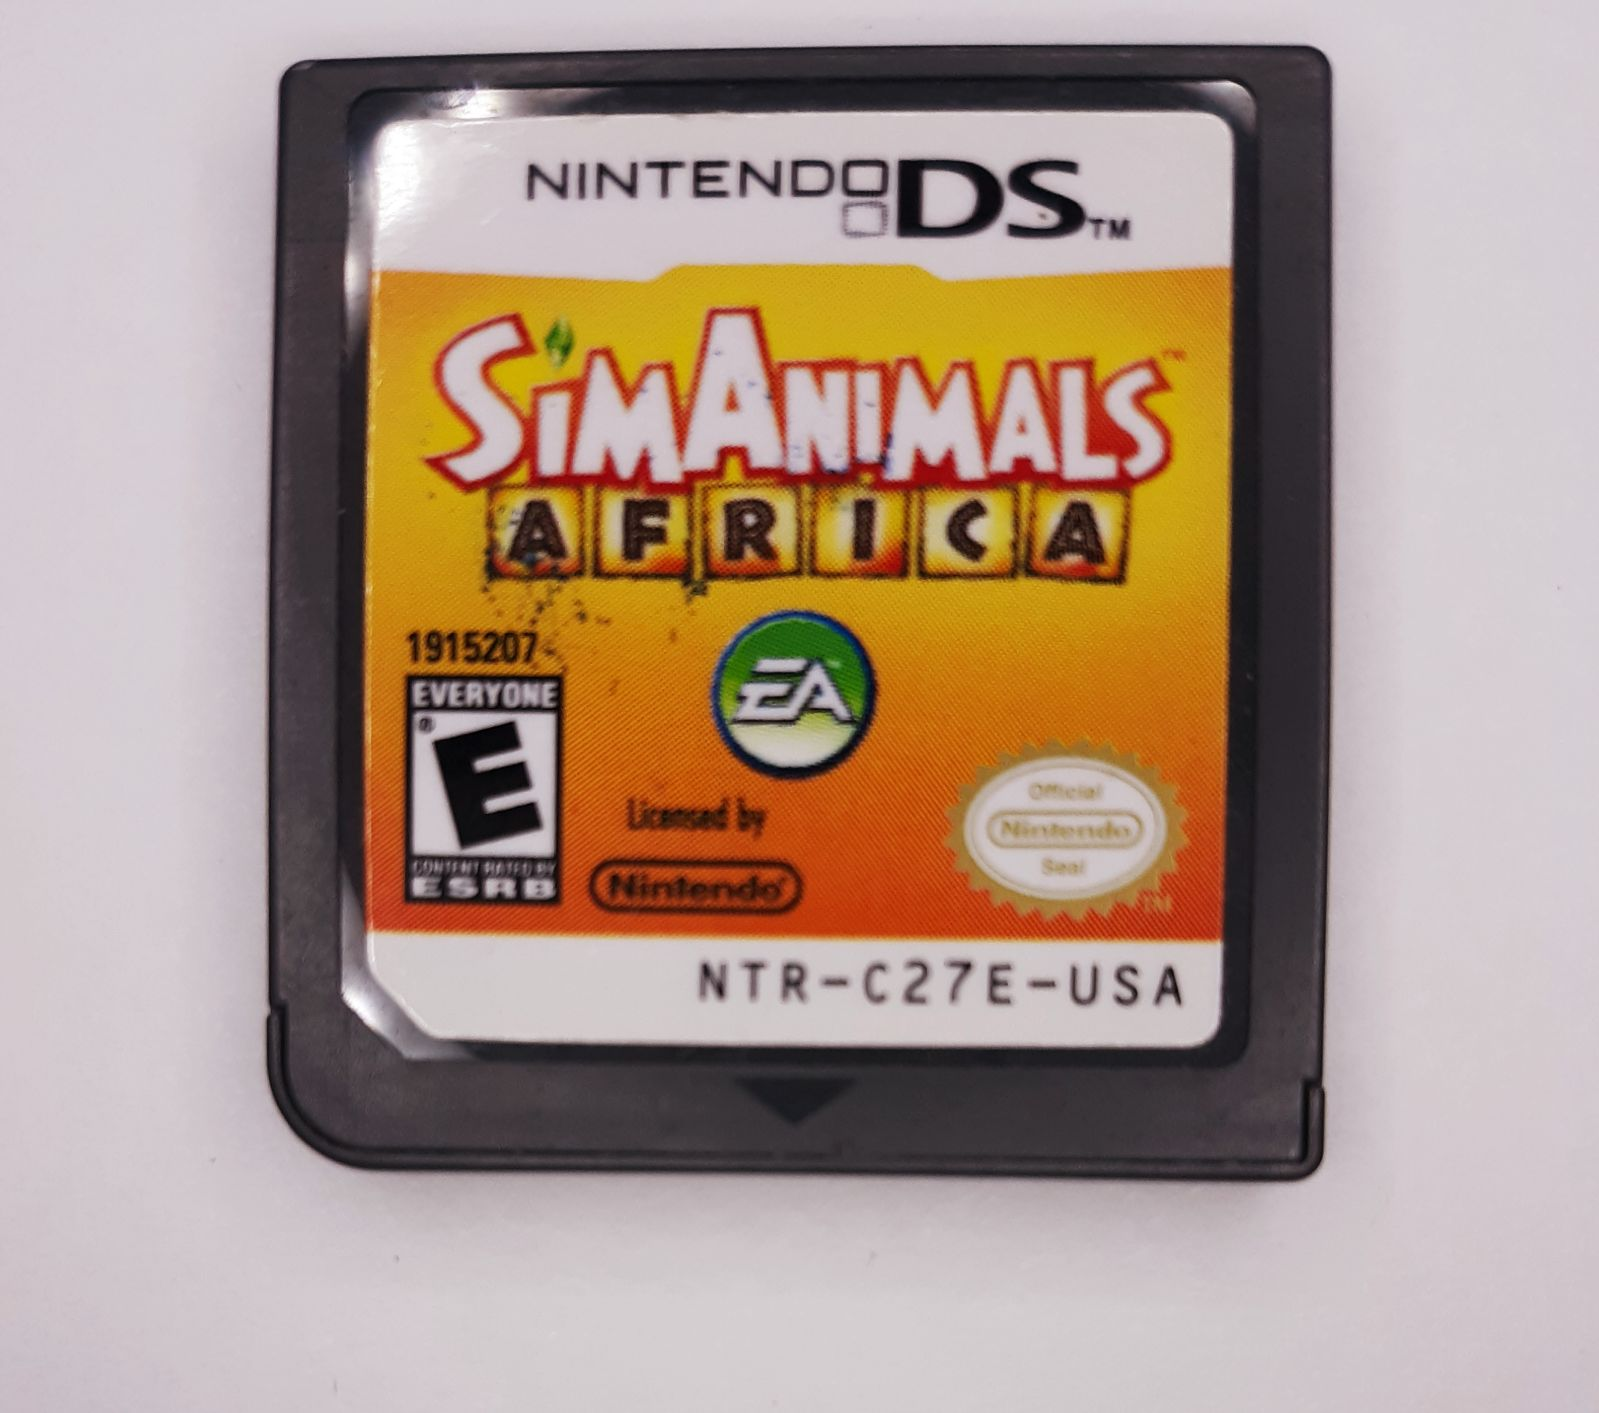 Sim Animals Africa DS